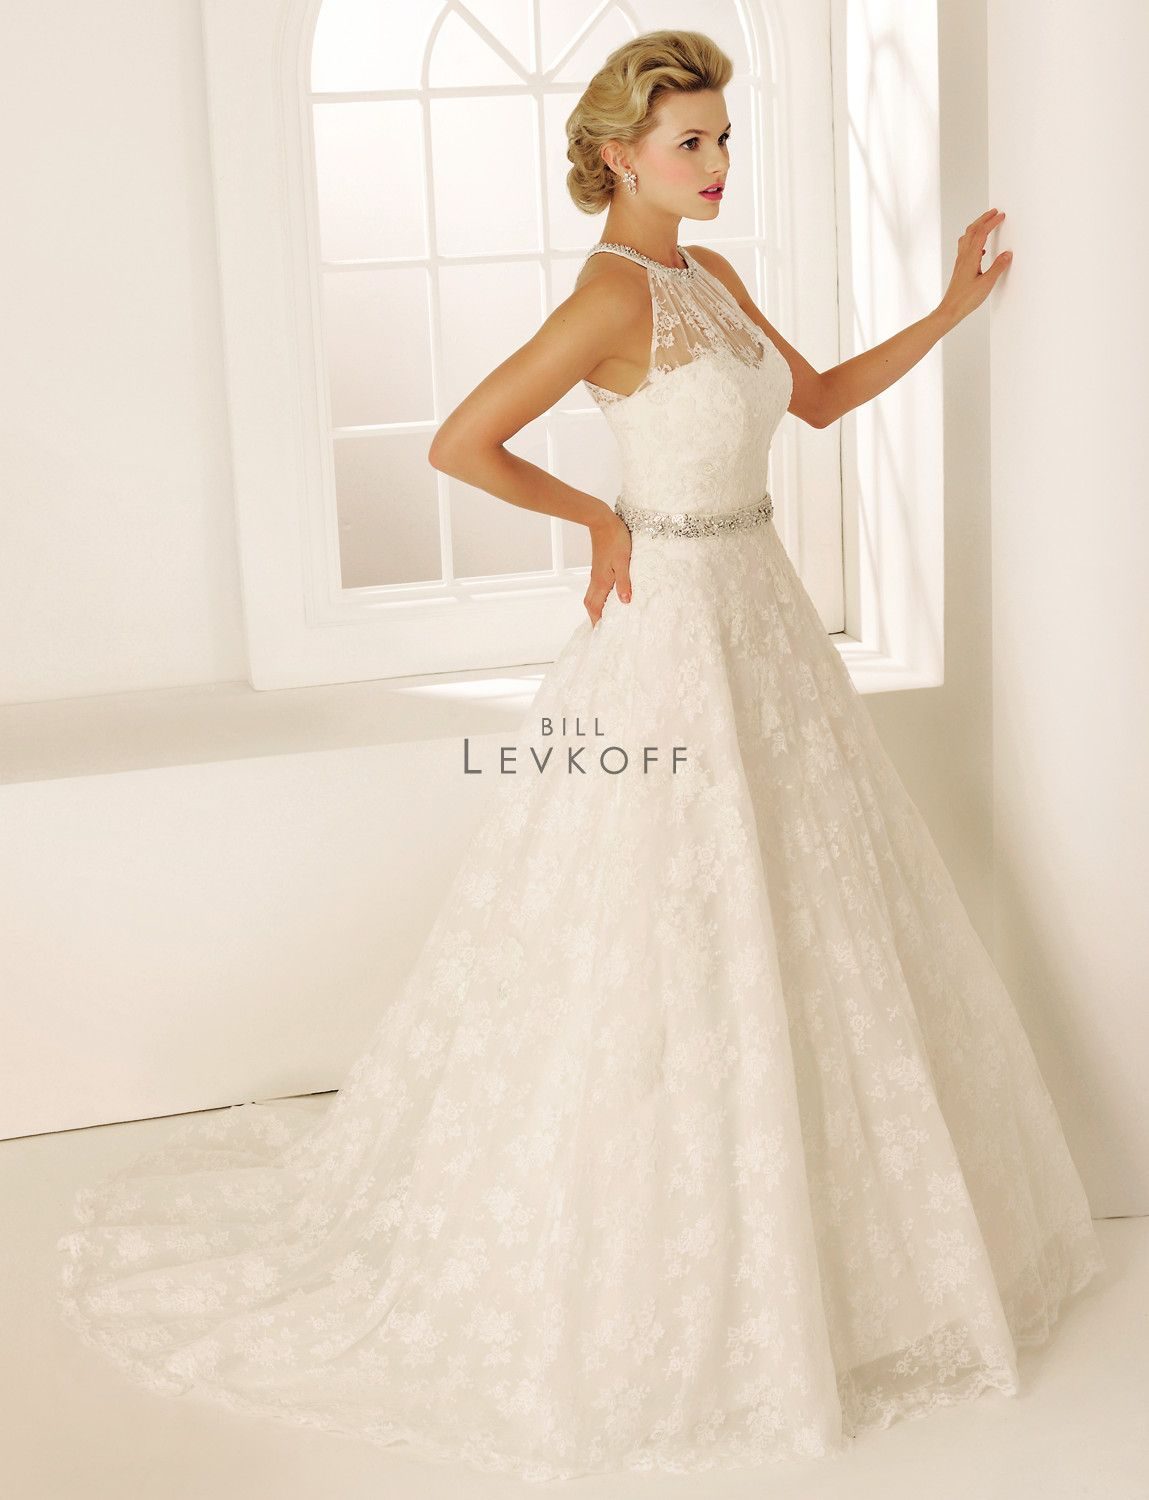 Bridal gown style 21210 bridal gowns wedding dresses by bill bridal gown style 21210 bridal gowns wedding dresses by bill levkoff ombrellifo Gallery